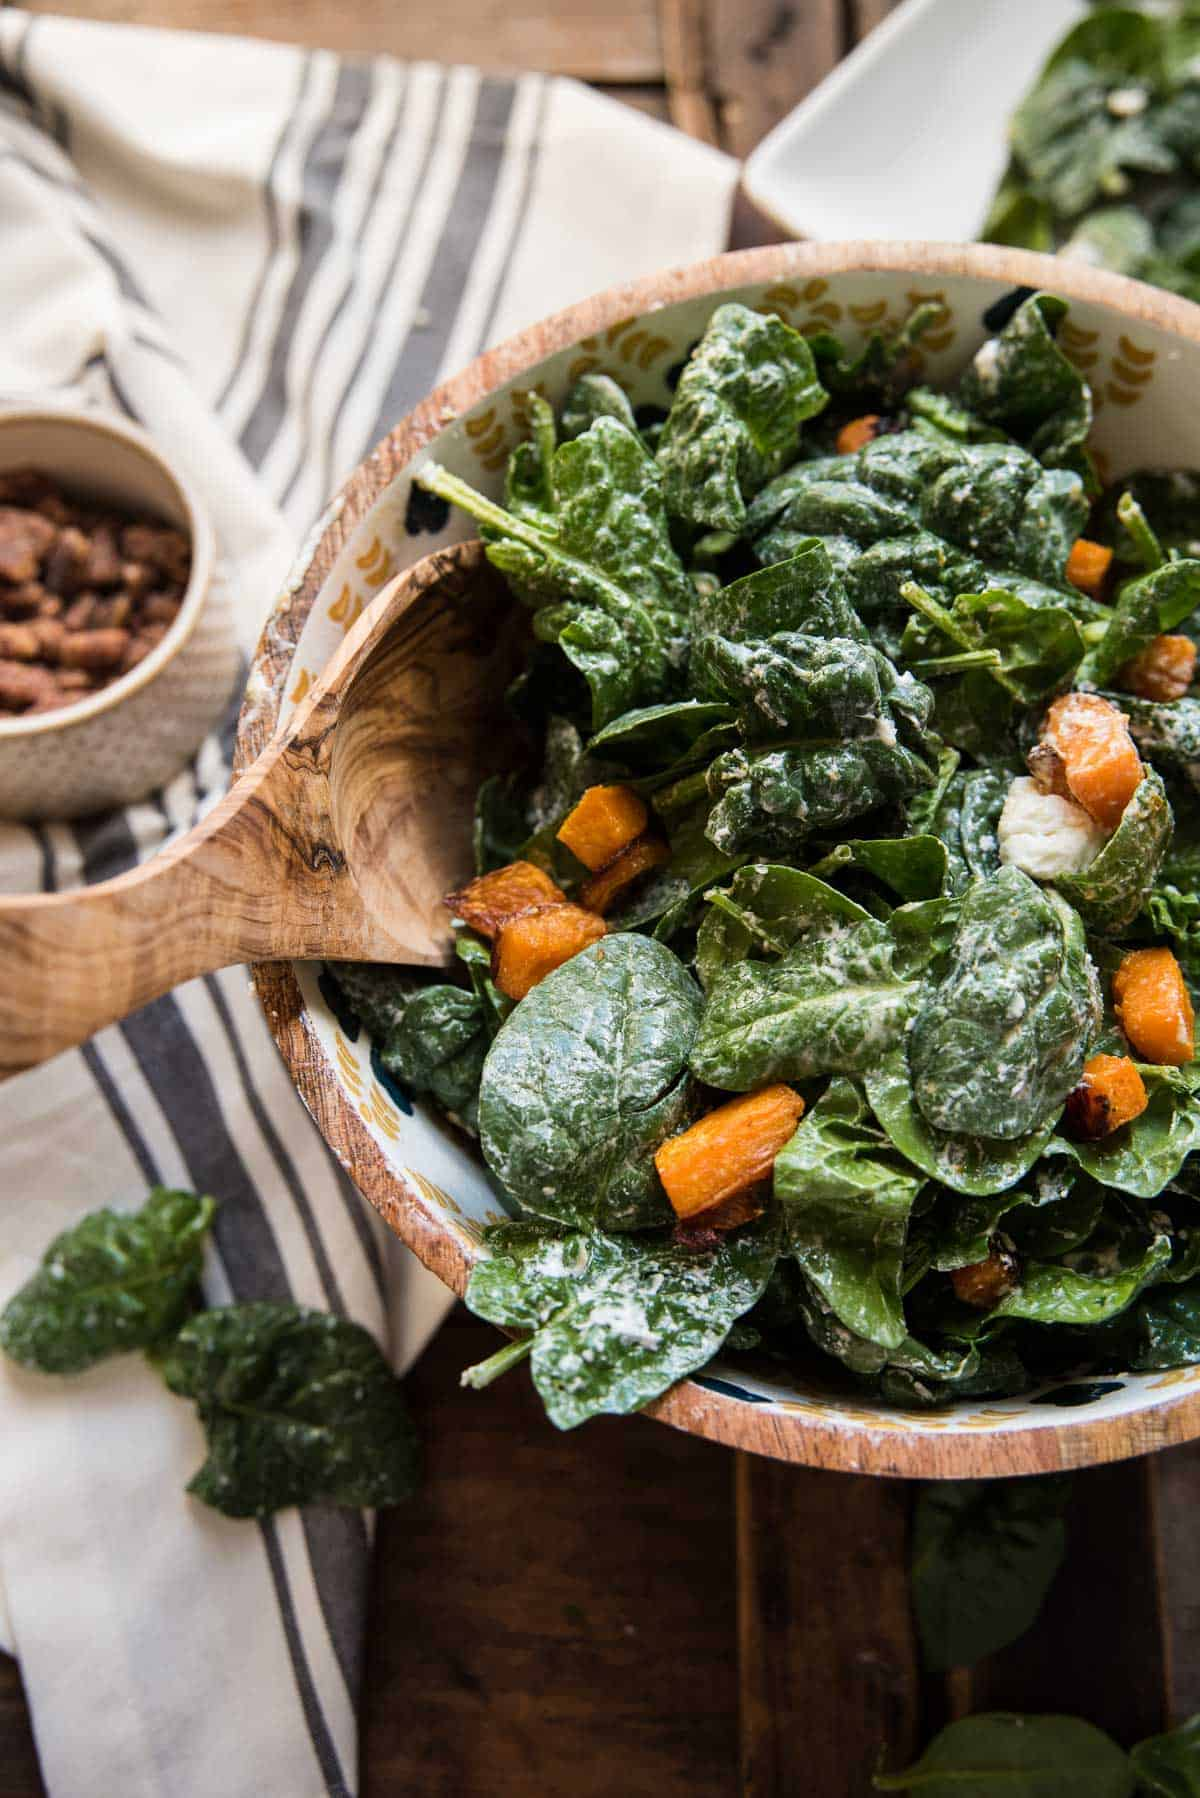 leafy spinach tossed with roasted butternut squash and warmed goat cheese